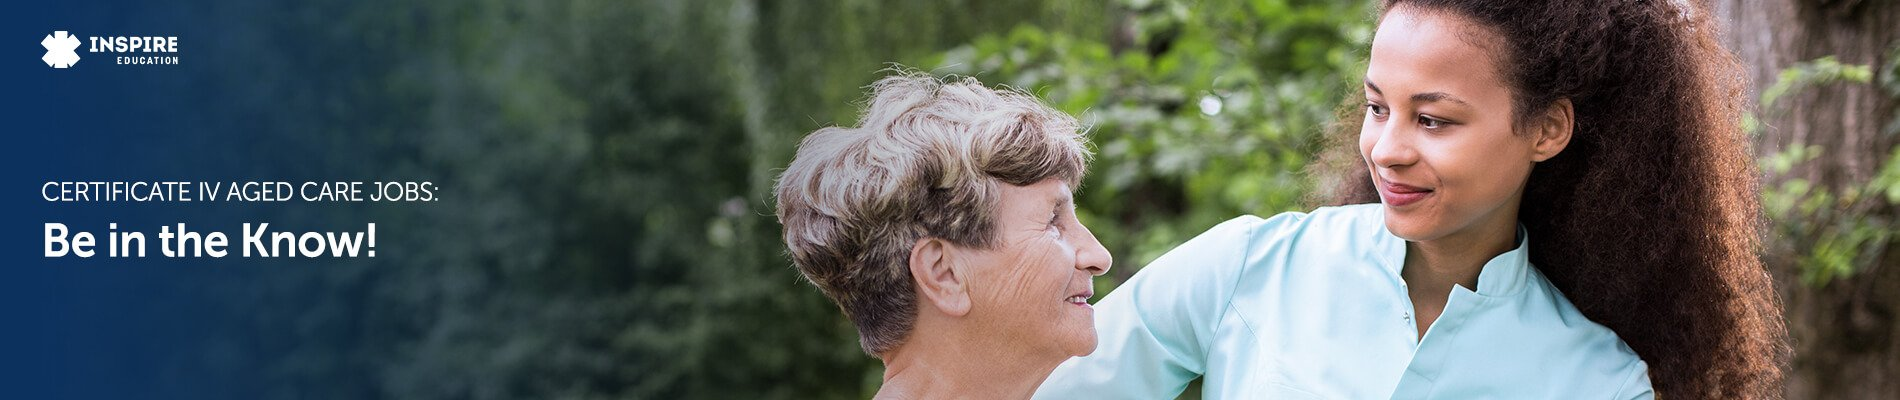 Certificate IV Aged Care Jobs: Be in the Know!